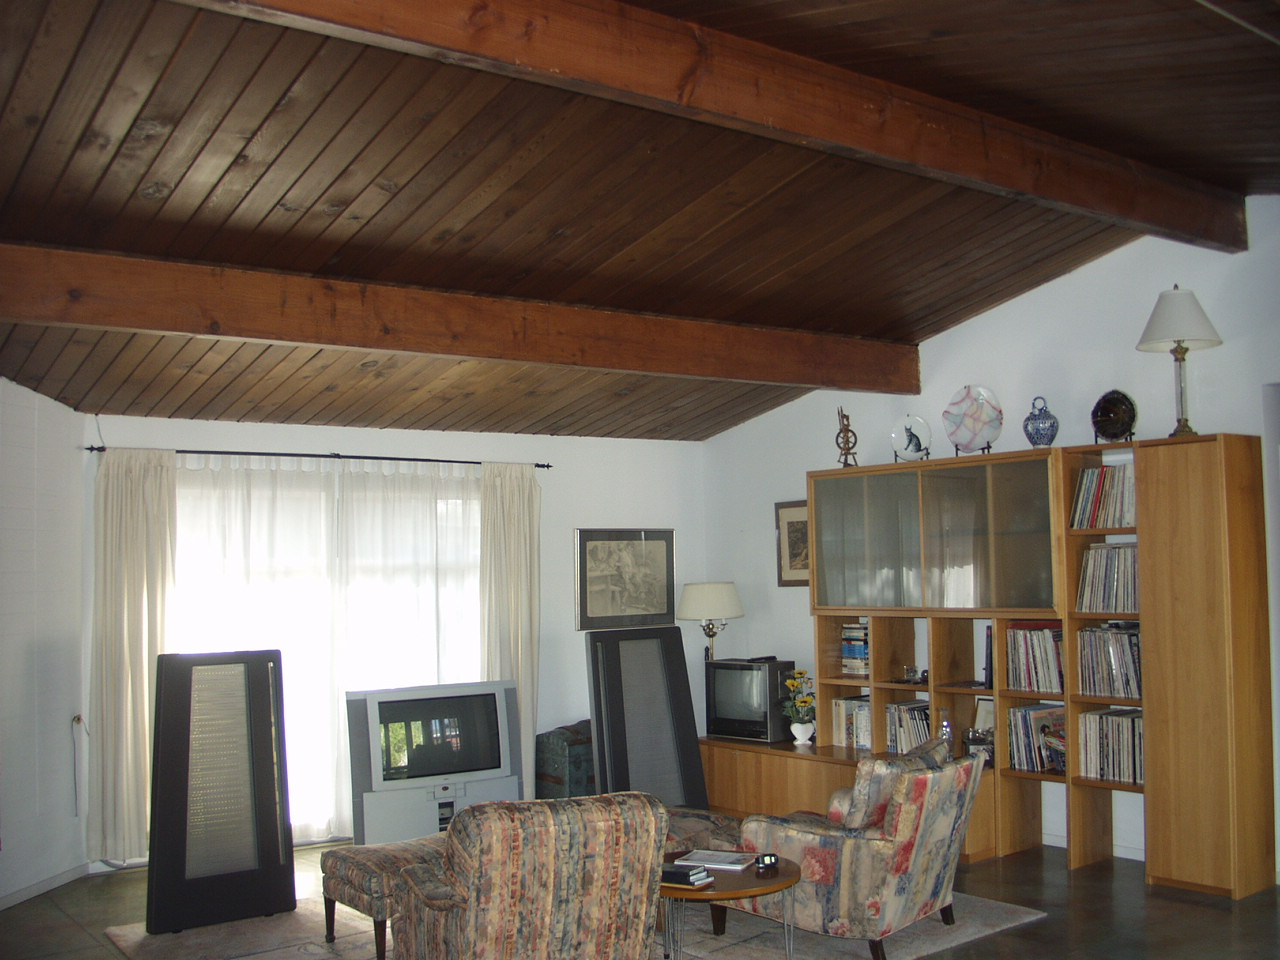 Exposed ceiling beams ceiling systems for Exposed beam ceiling